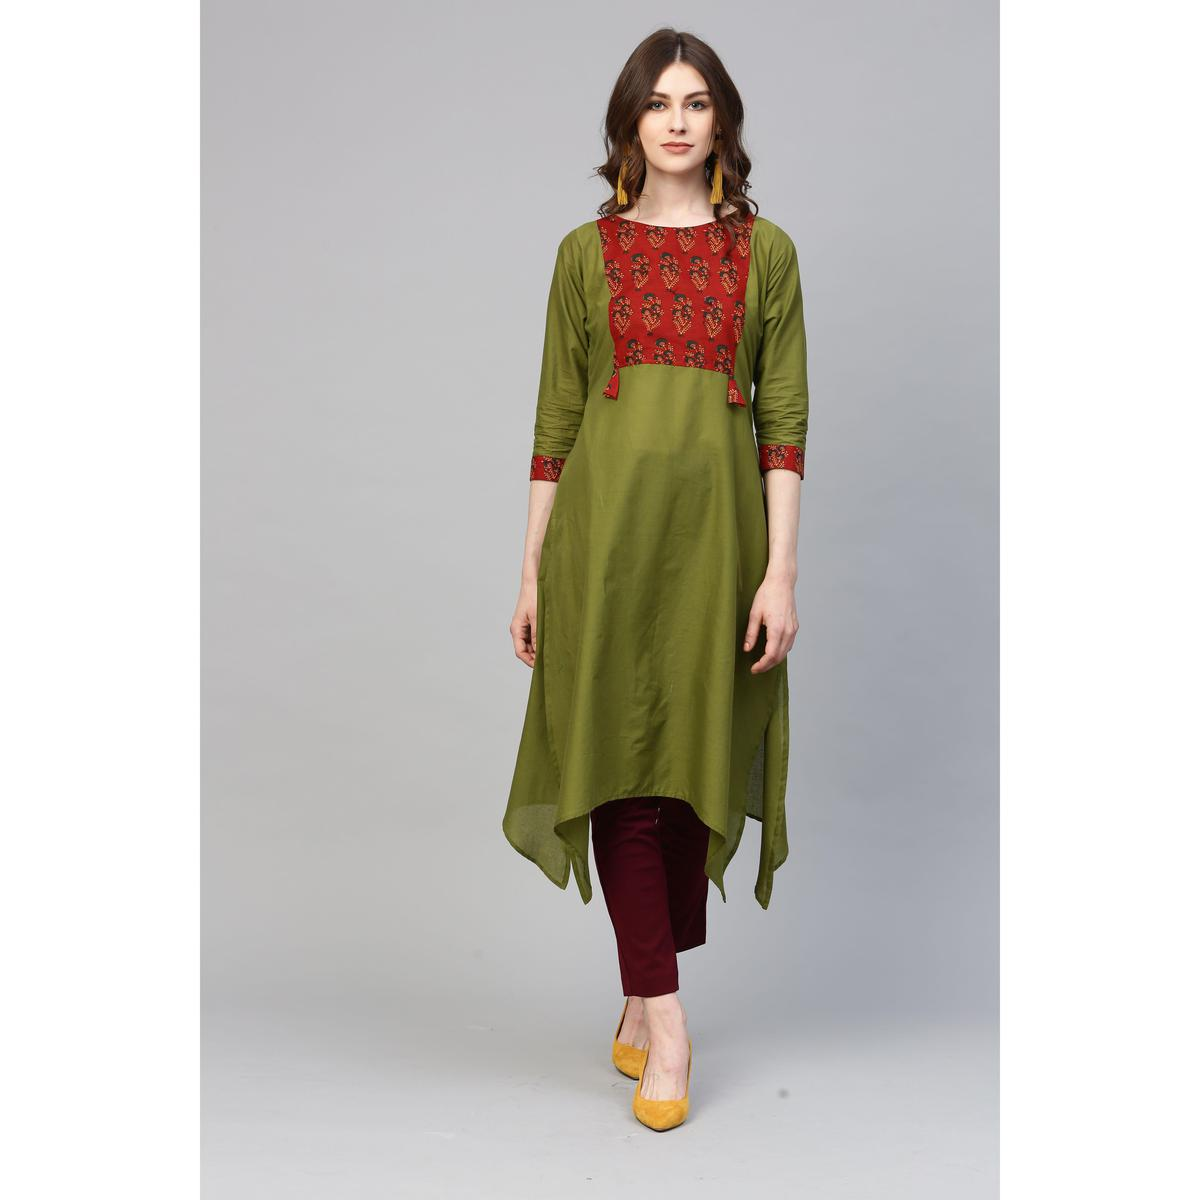 Ahalyaa - Green Colored Casual Printed Cotton Kurti